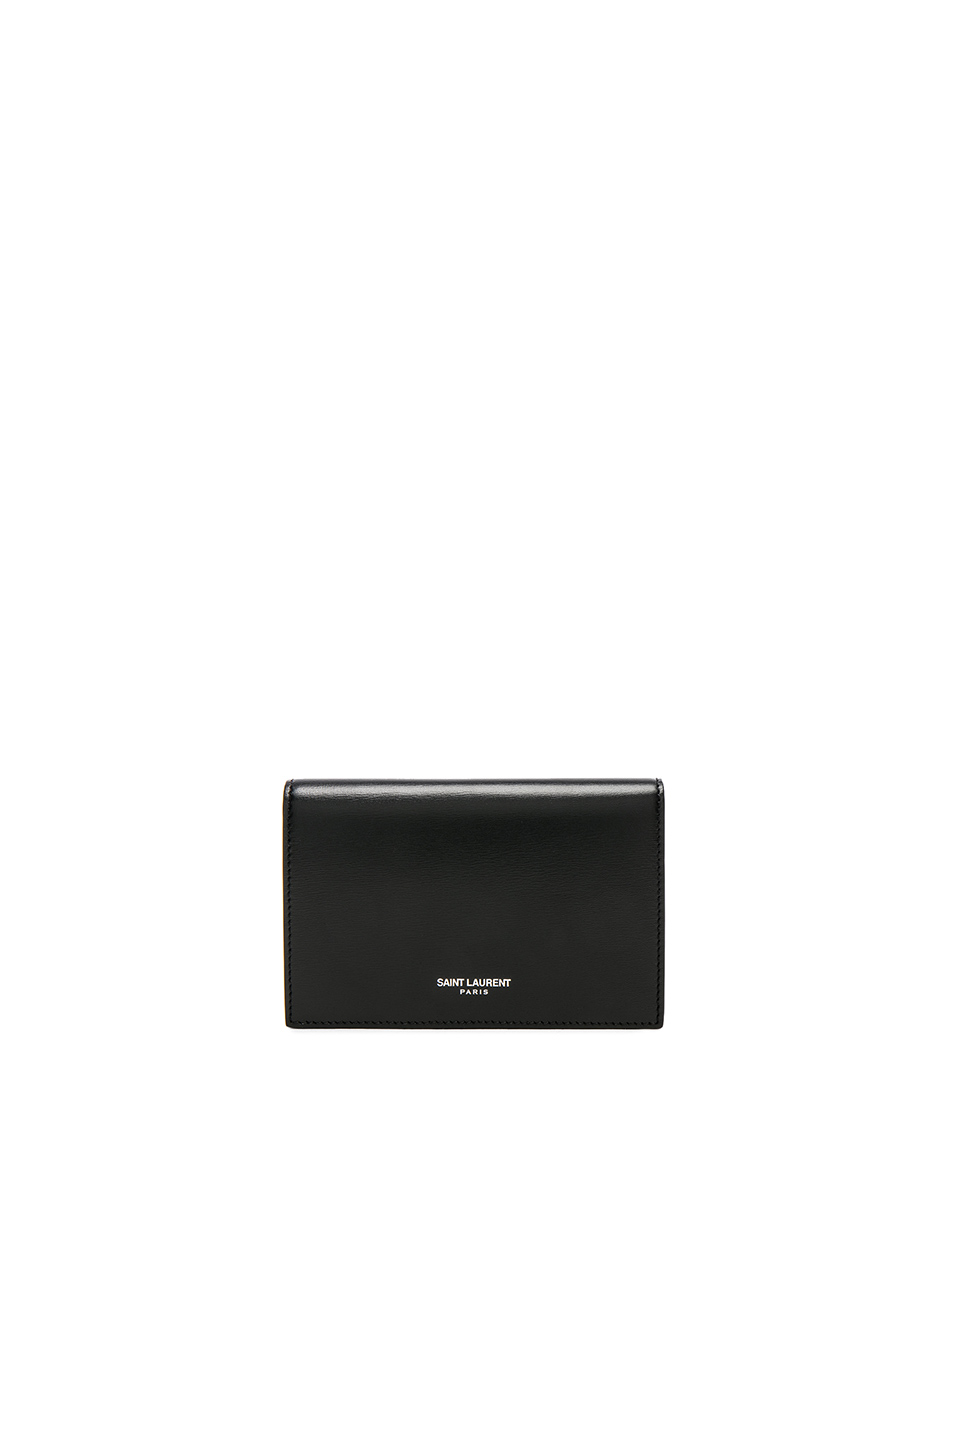 Saint Laurent Fragments Flap Wallet In Black & Black